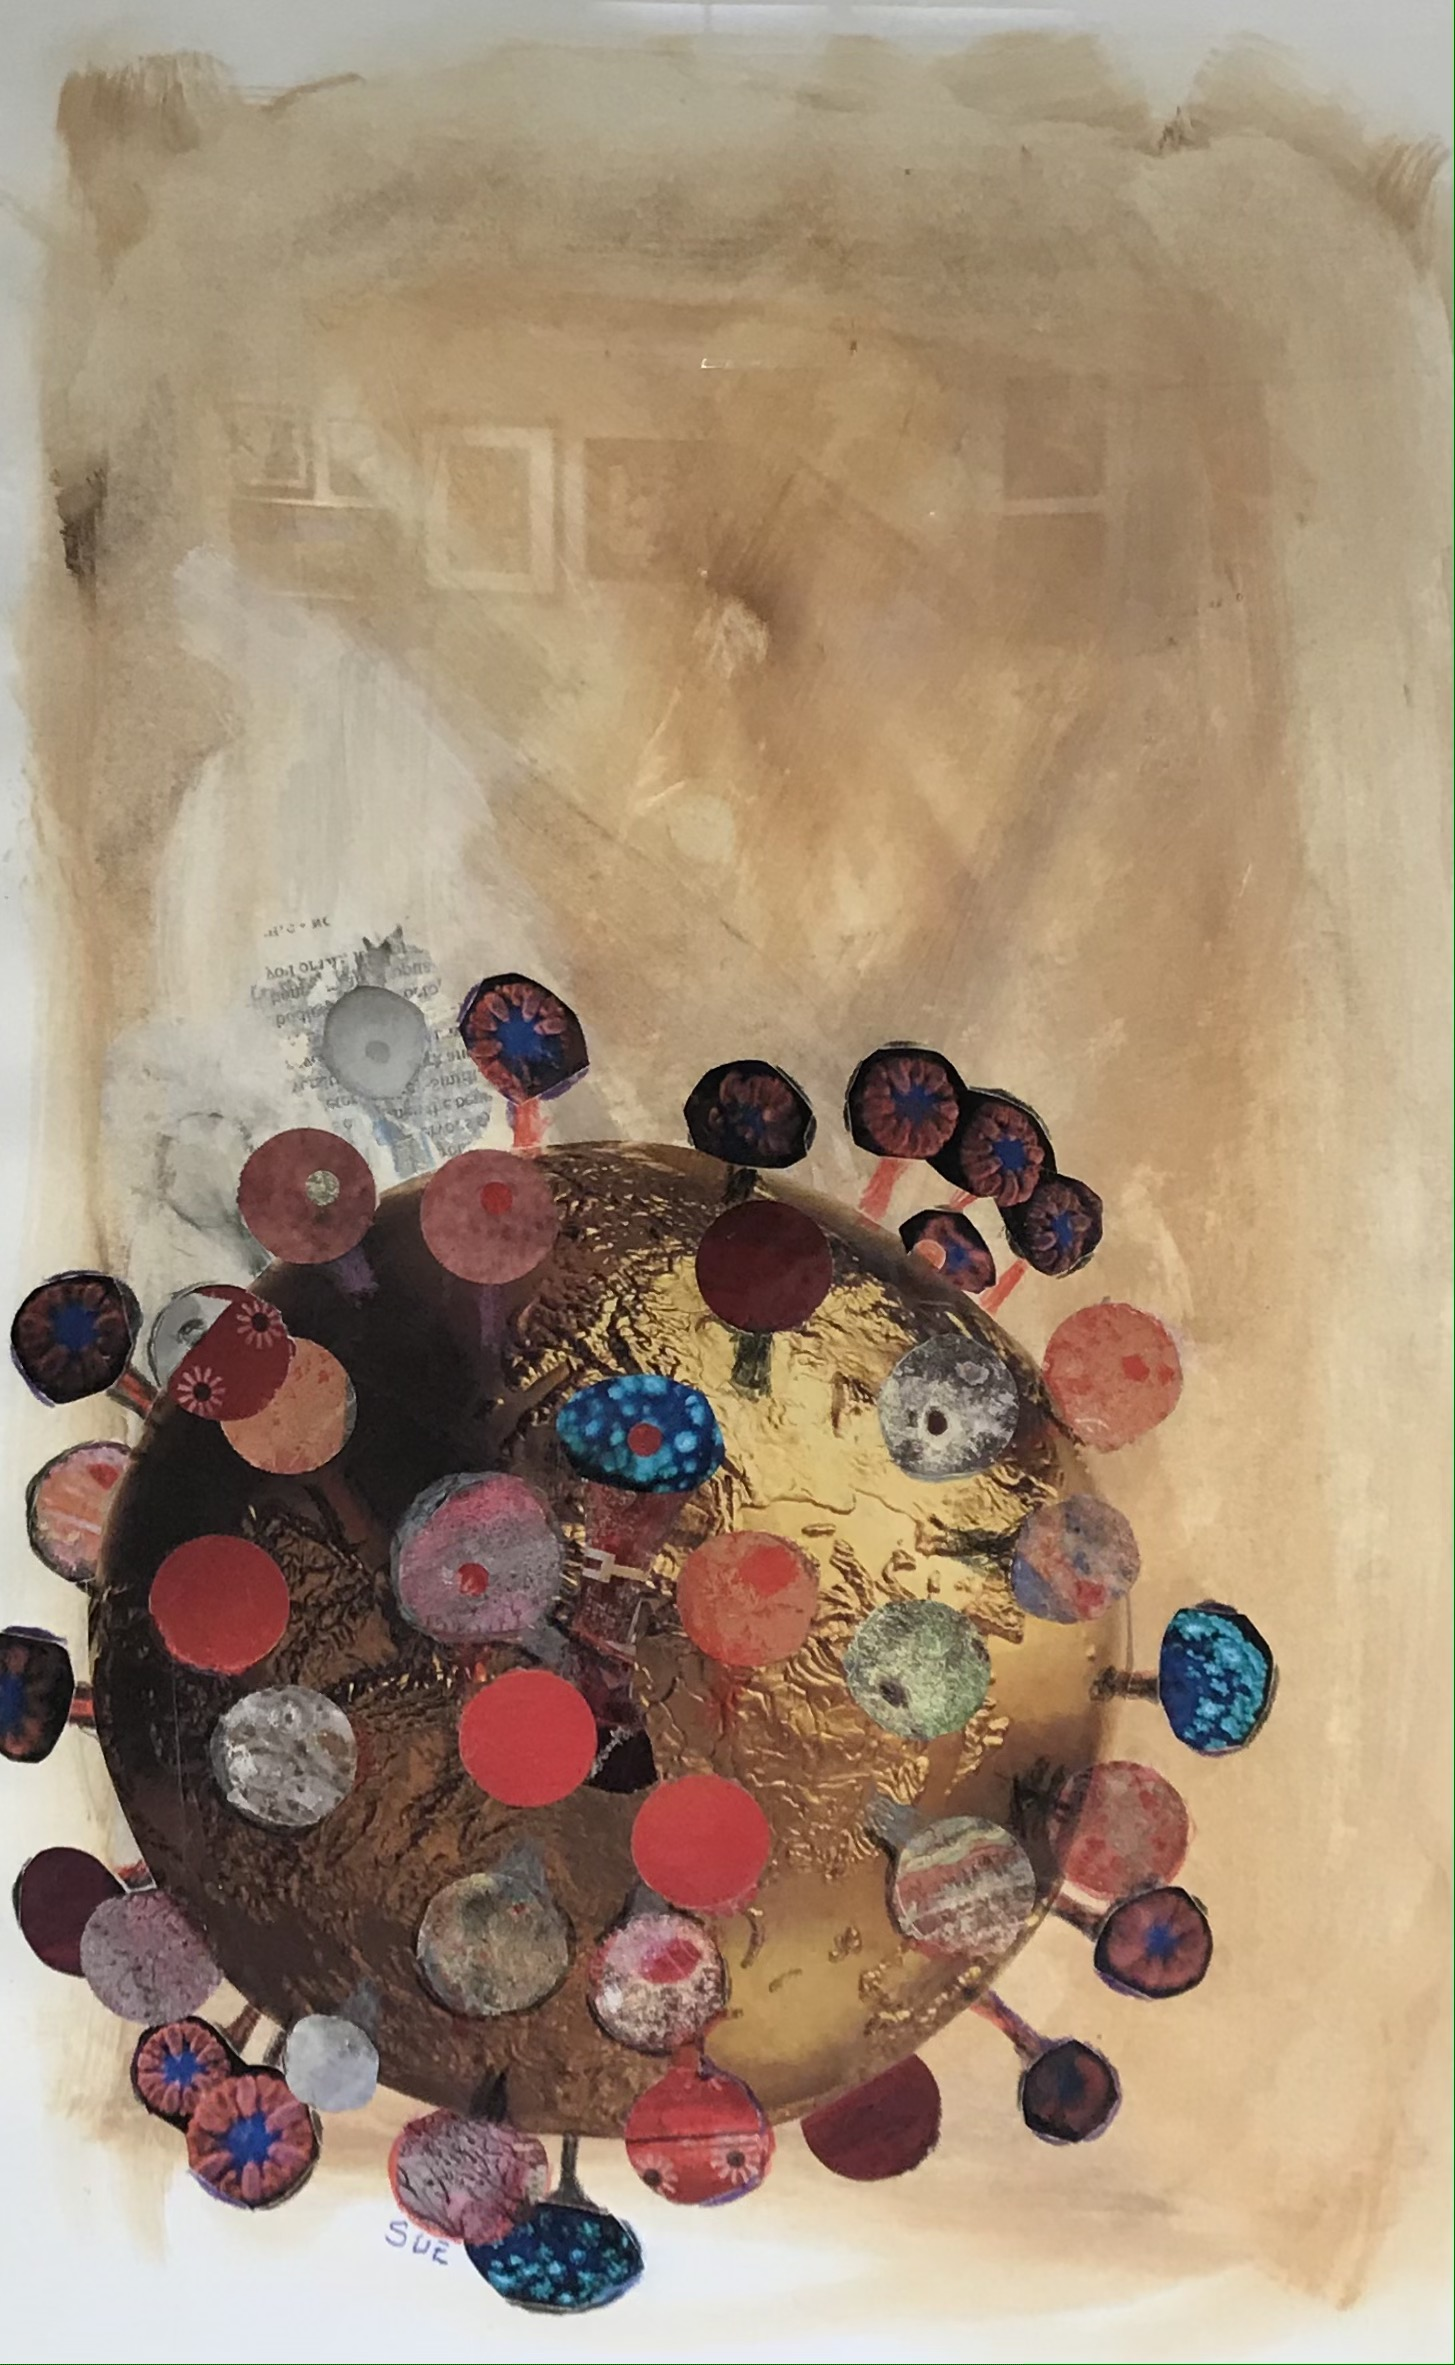 'Virus Imagining', collage and acrylic by Susan Moxon ($300)